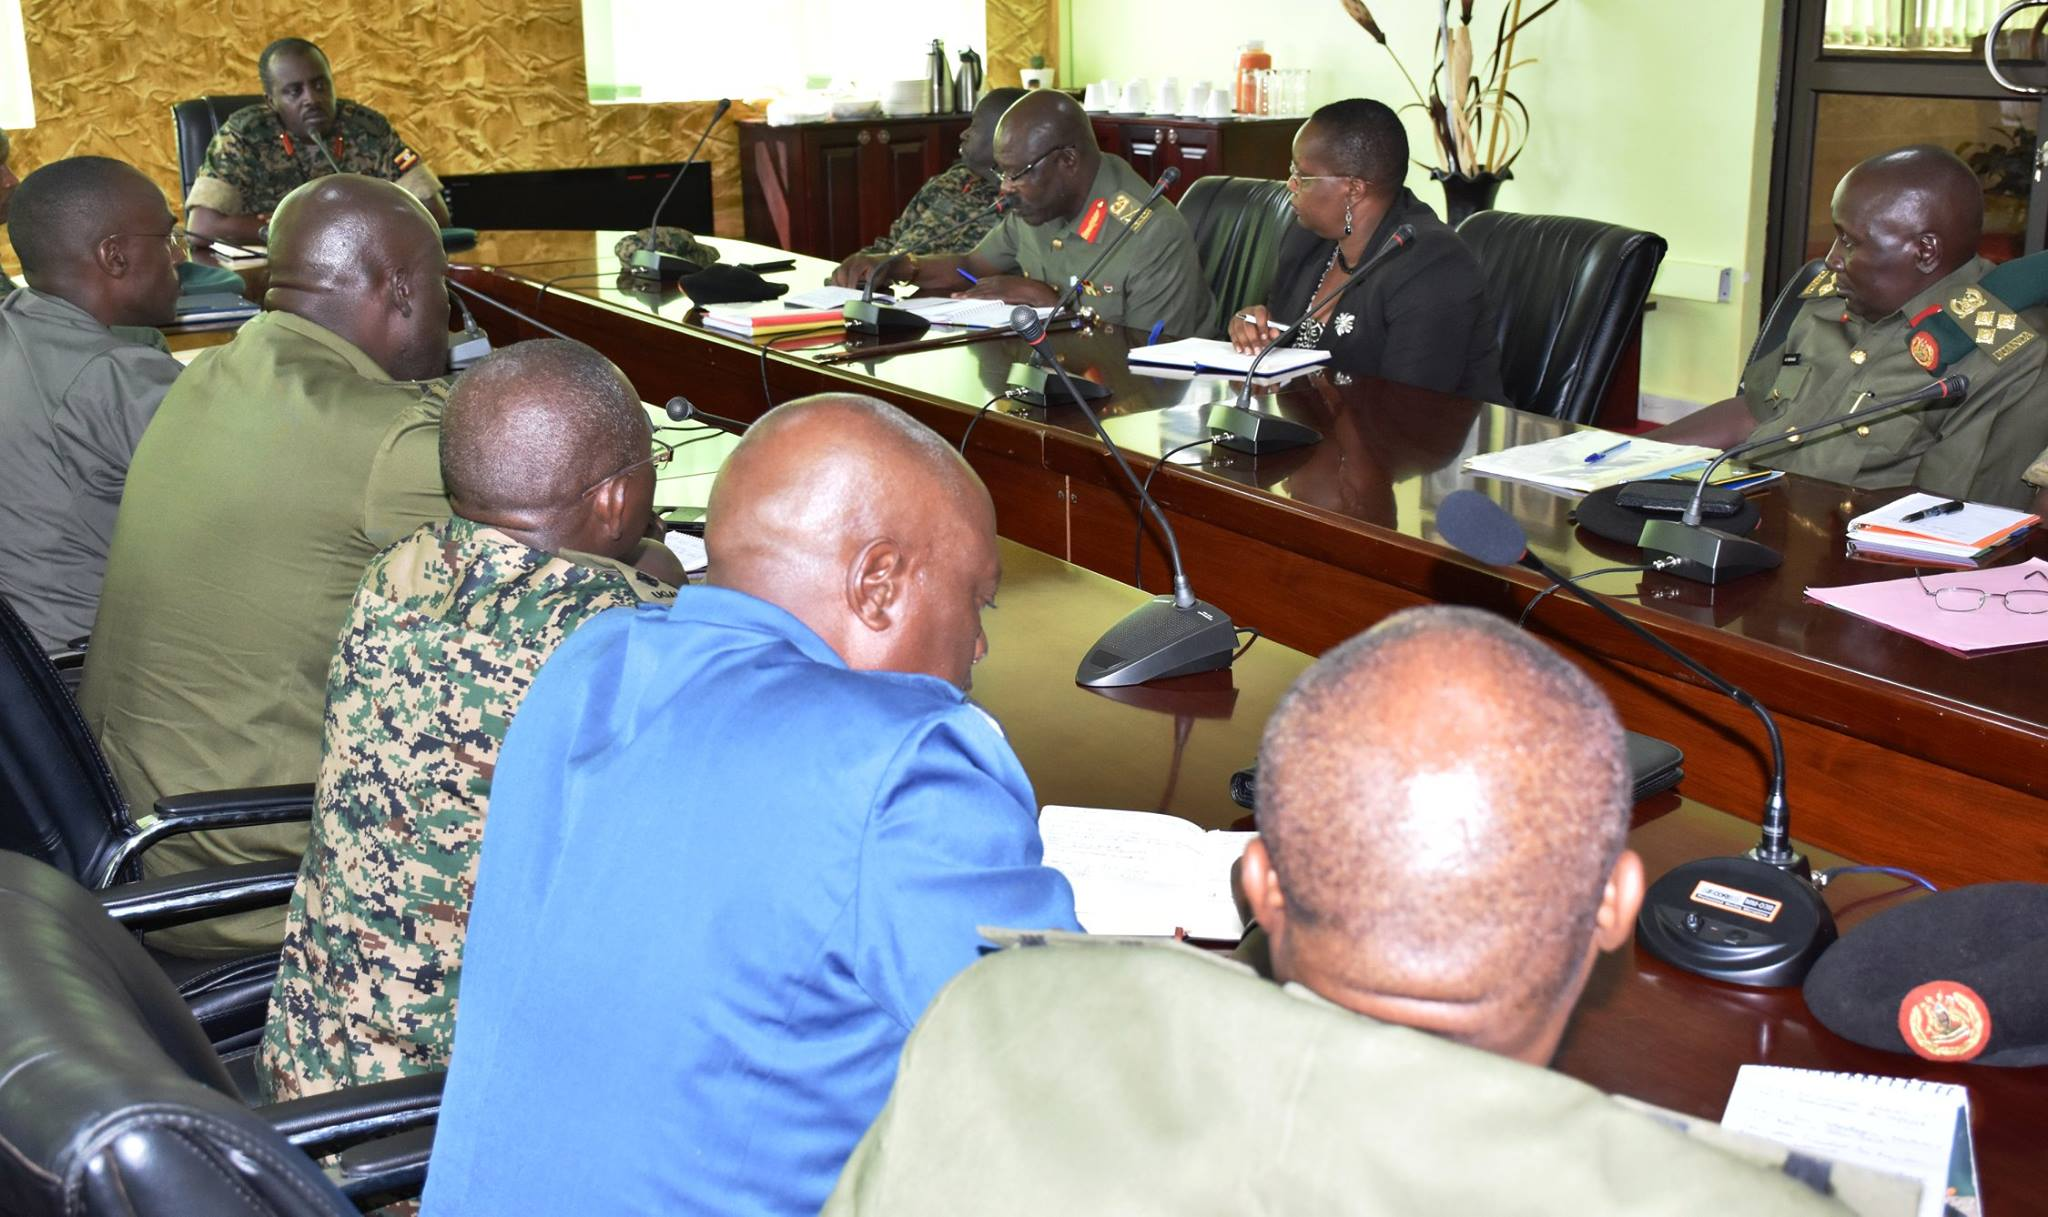 CDF Gen. David Muhoozi has Monday September 10 launched the Uganda National Defence College (NDC) steering committee at army headquarters in Mbuya, Kampala (PHOTO: UPDF)